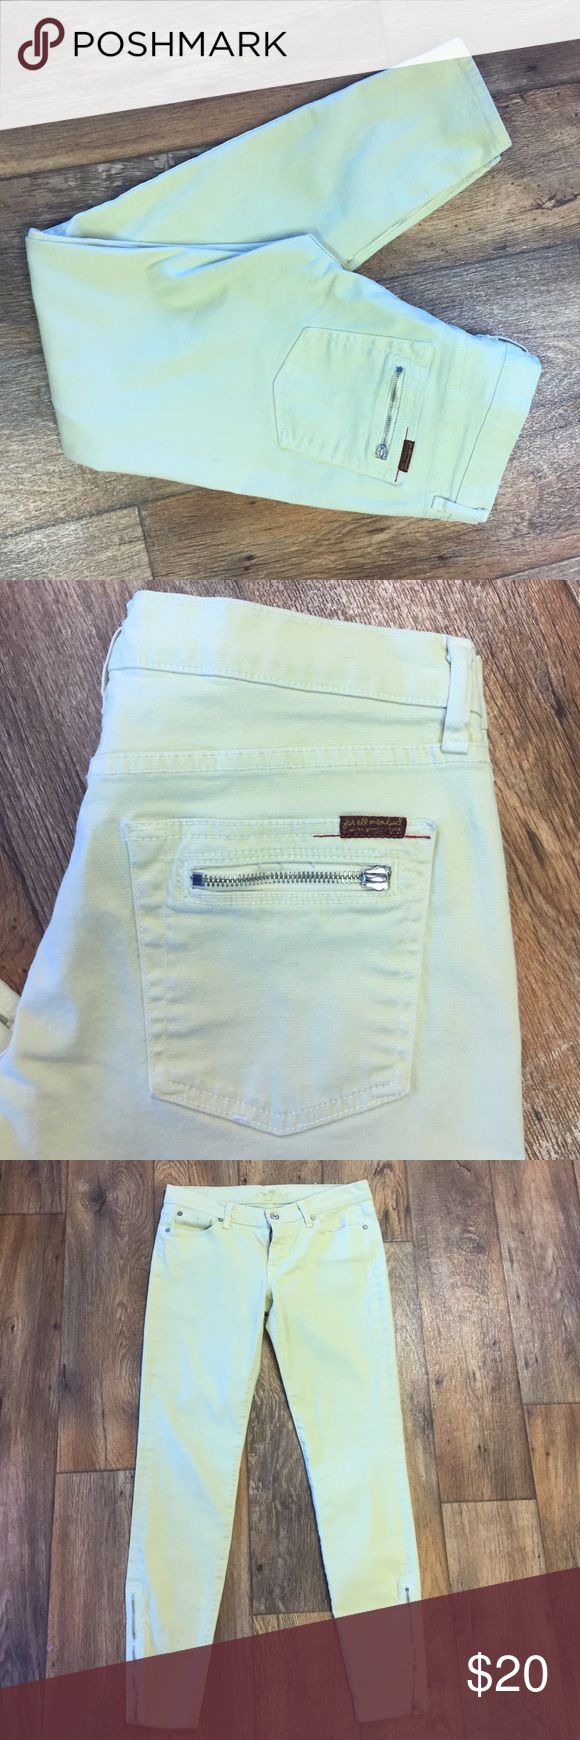 """7 for all Mankind Yellow Skinny Jeans Awesome soft yellow skinny jeans with zip up legs. As shown in picture one of the zipper pulls is missing off the back pocket. May have a minor imperfection here or there but nothing super noticeable. 28.75"""" inseam 7 For All Mankind Jeans Skinny"""